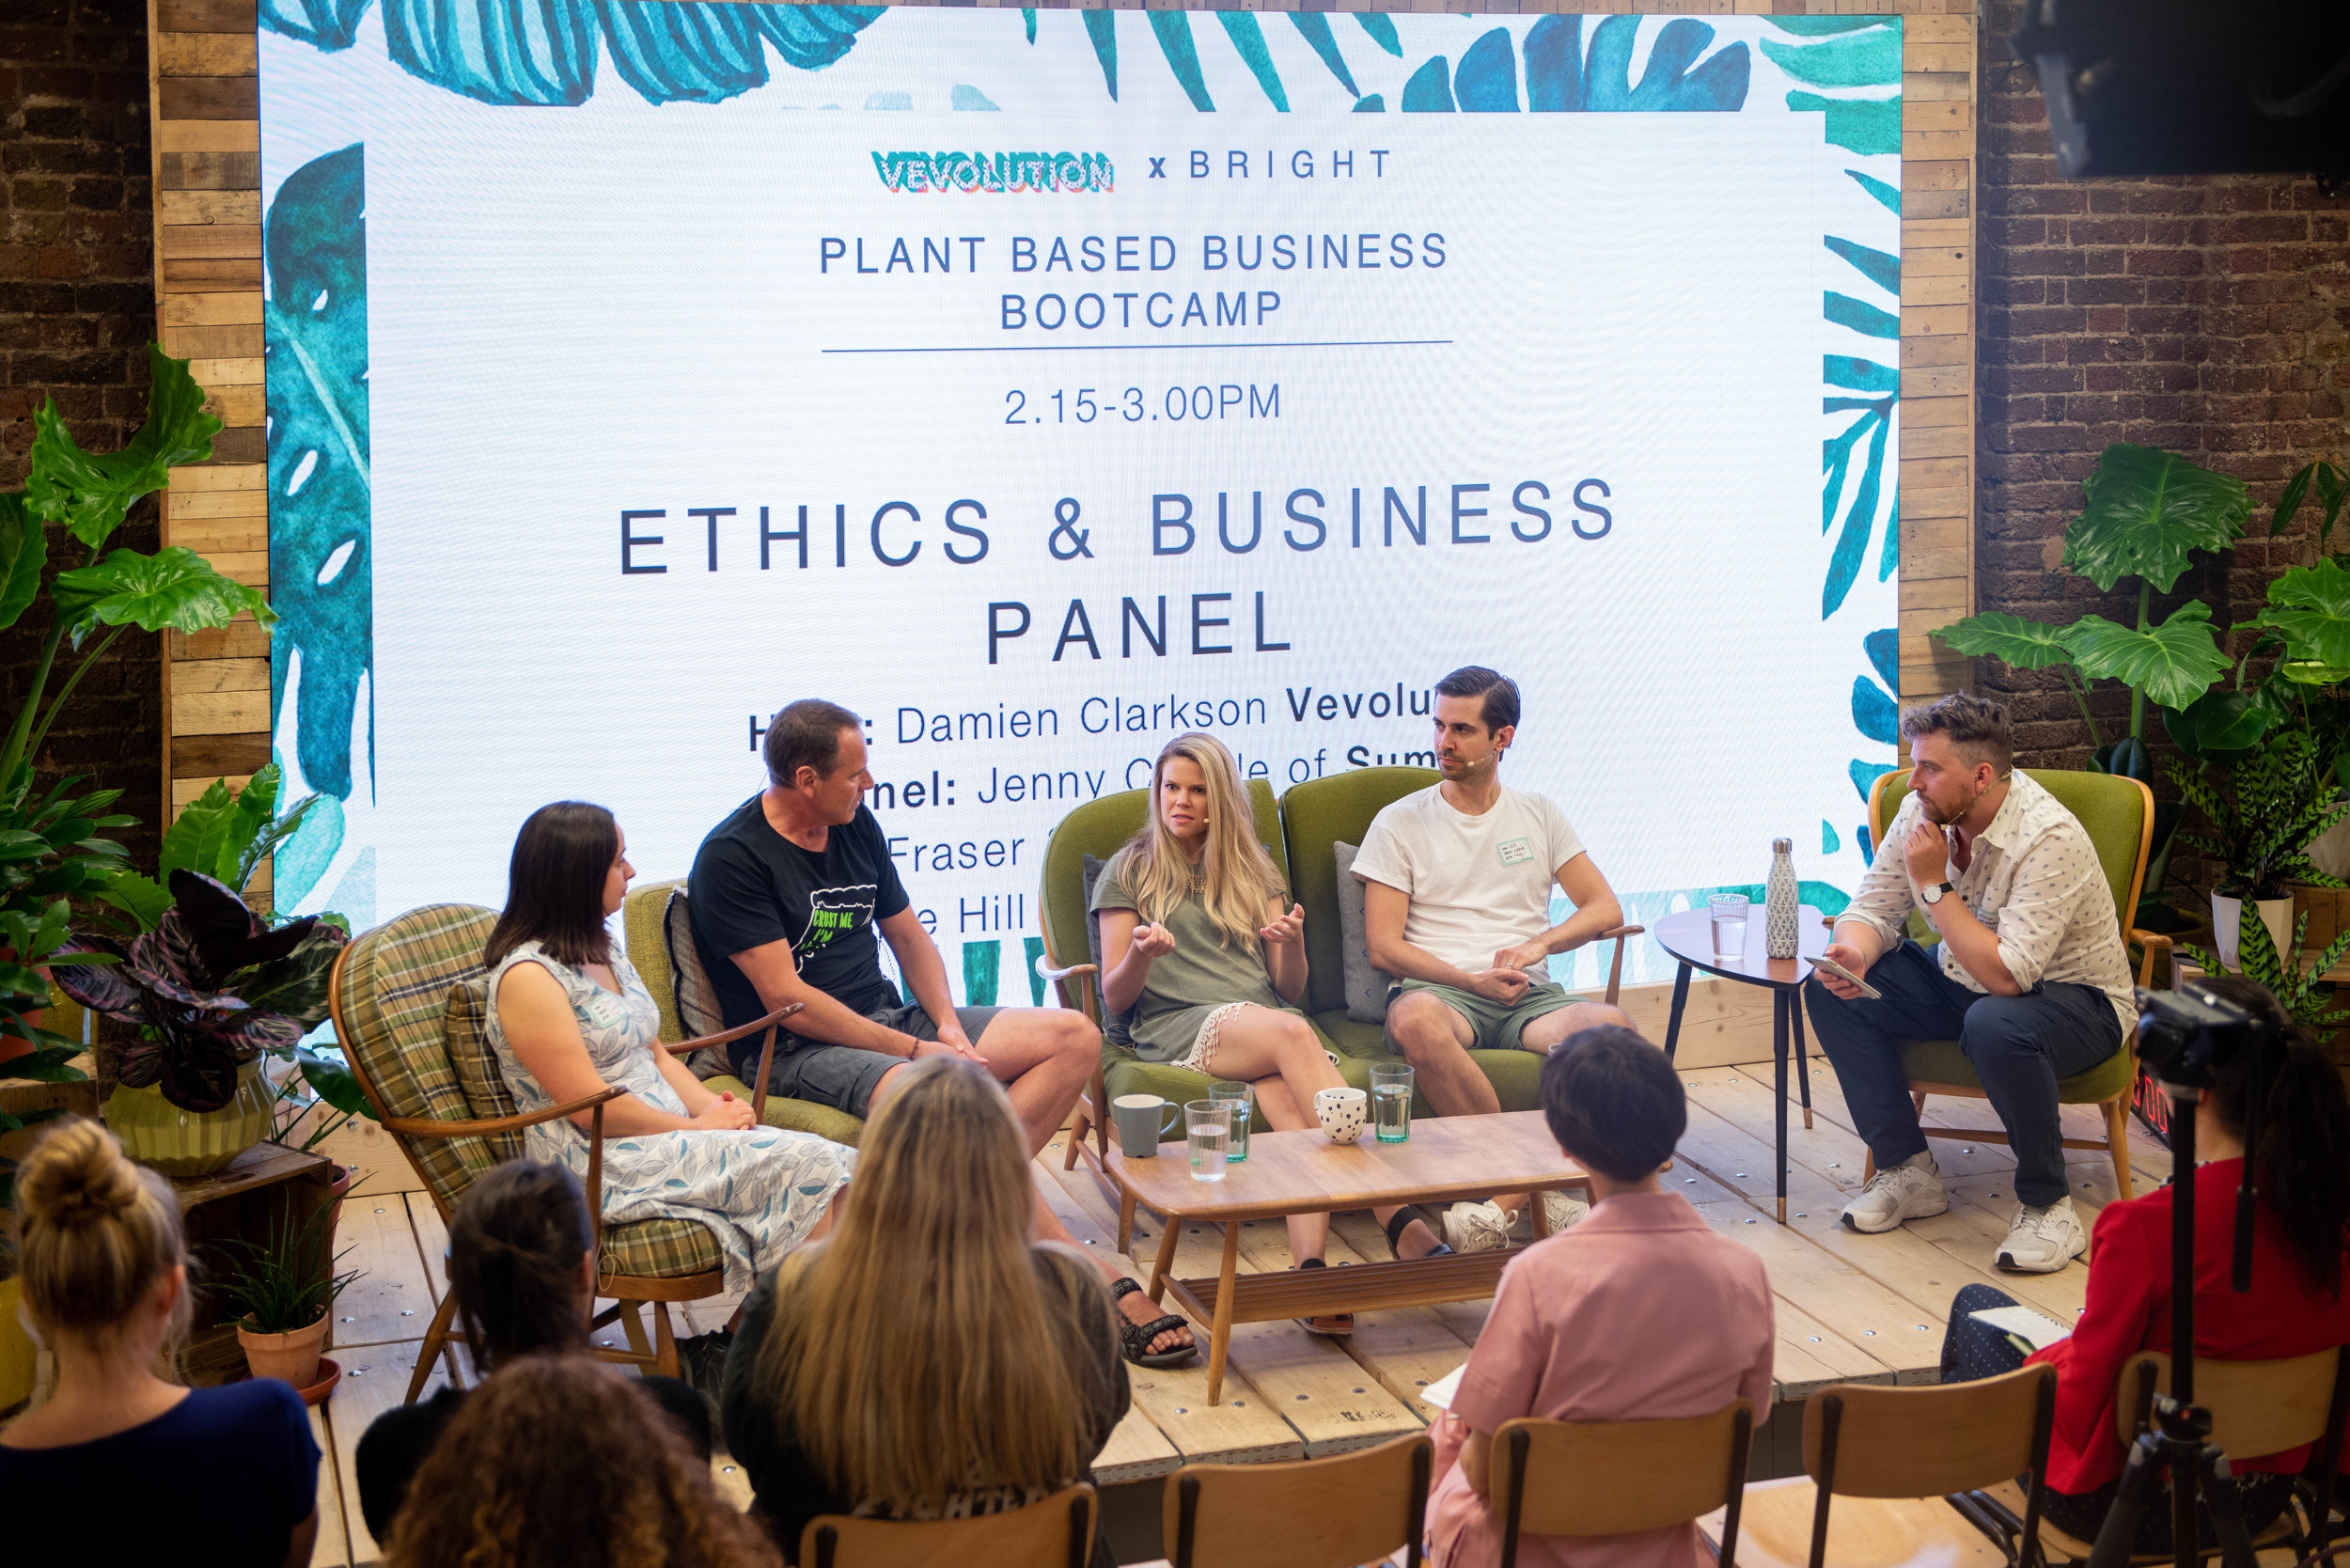 Ethics Panel At The Plant Based Business Bootcamp